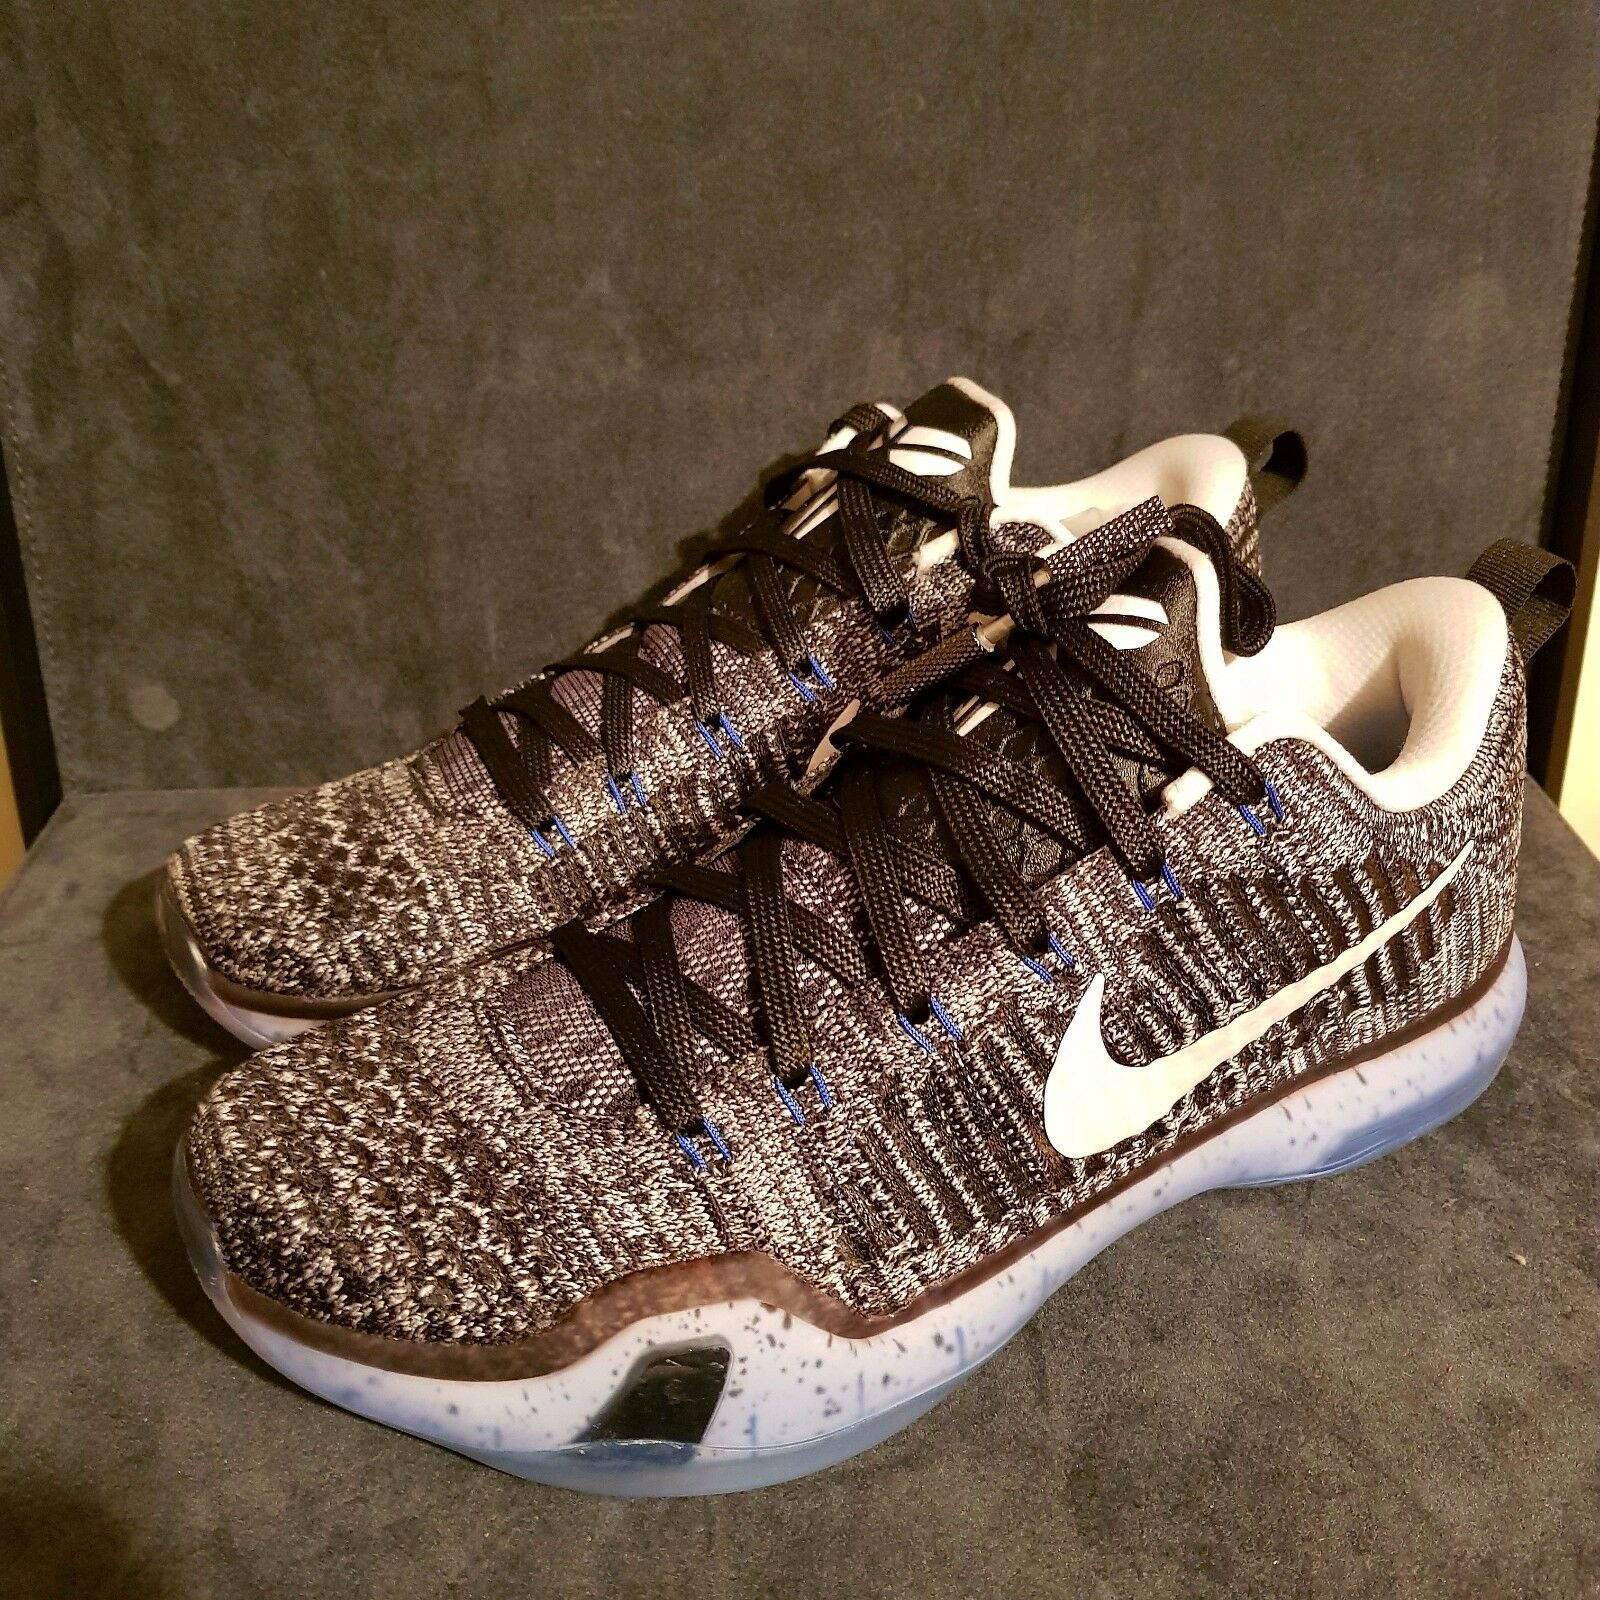 NIKE Kobe X Elite faible PRM